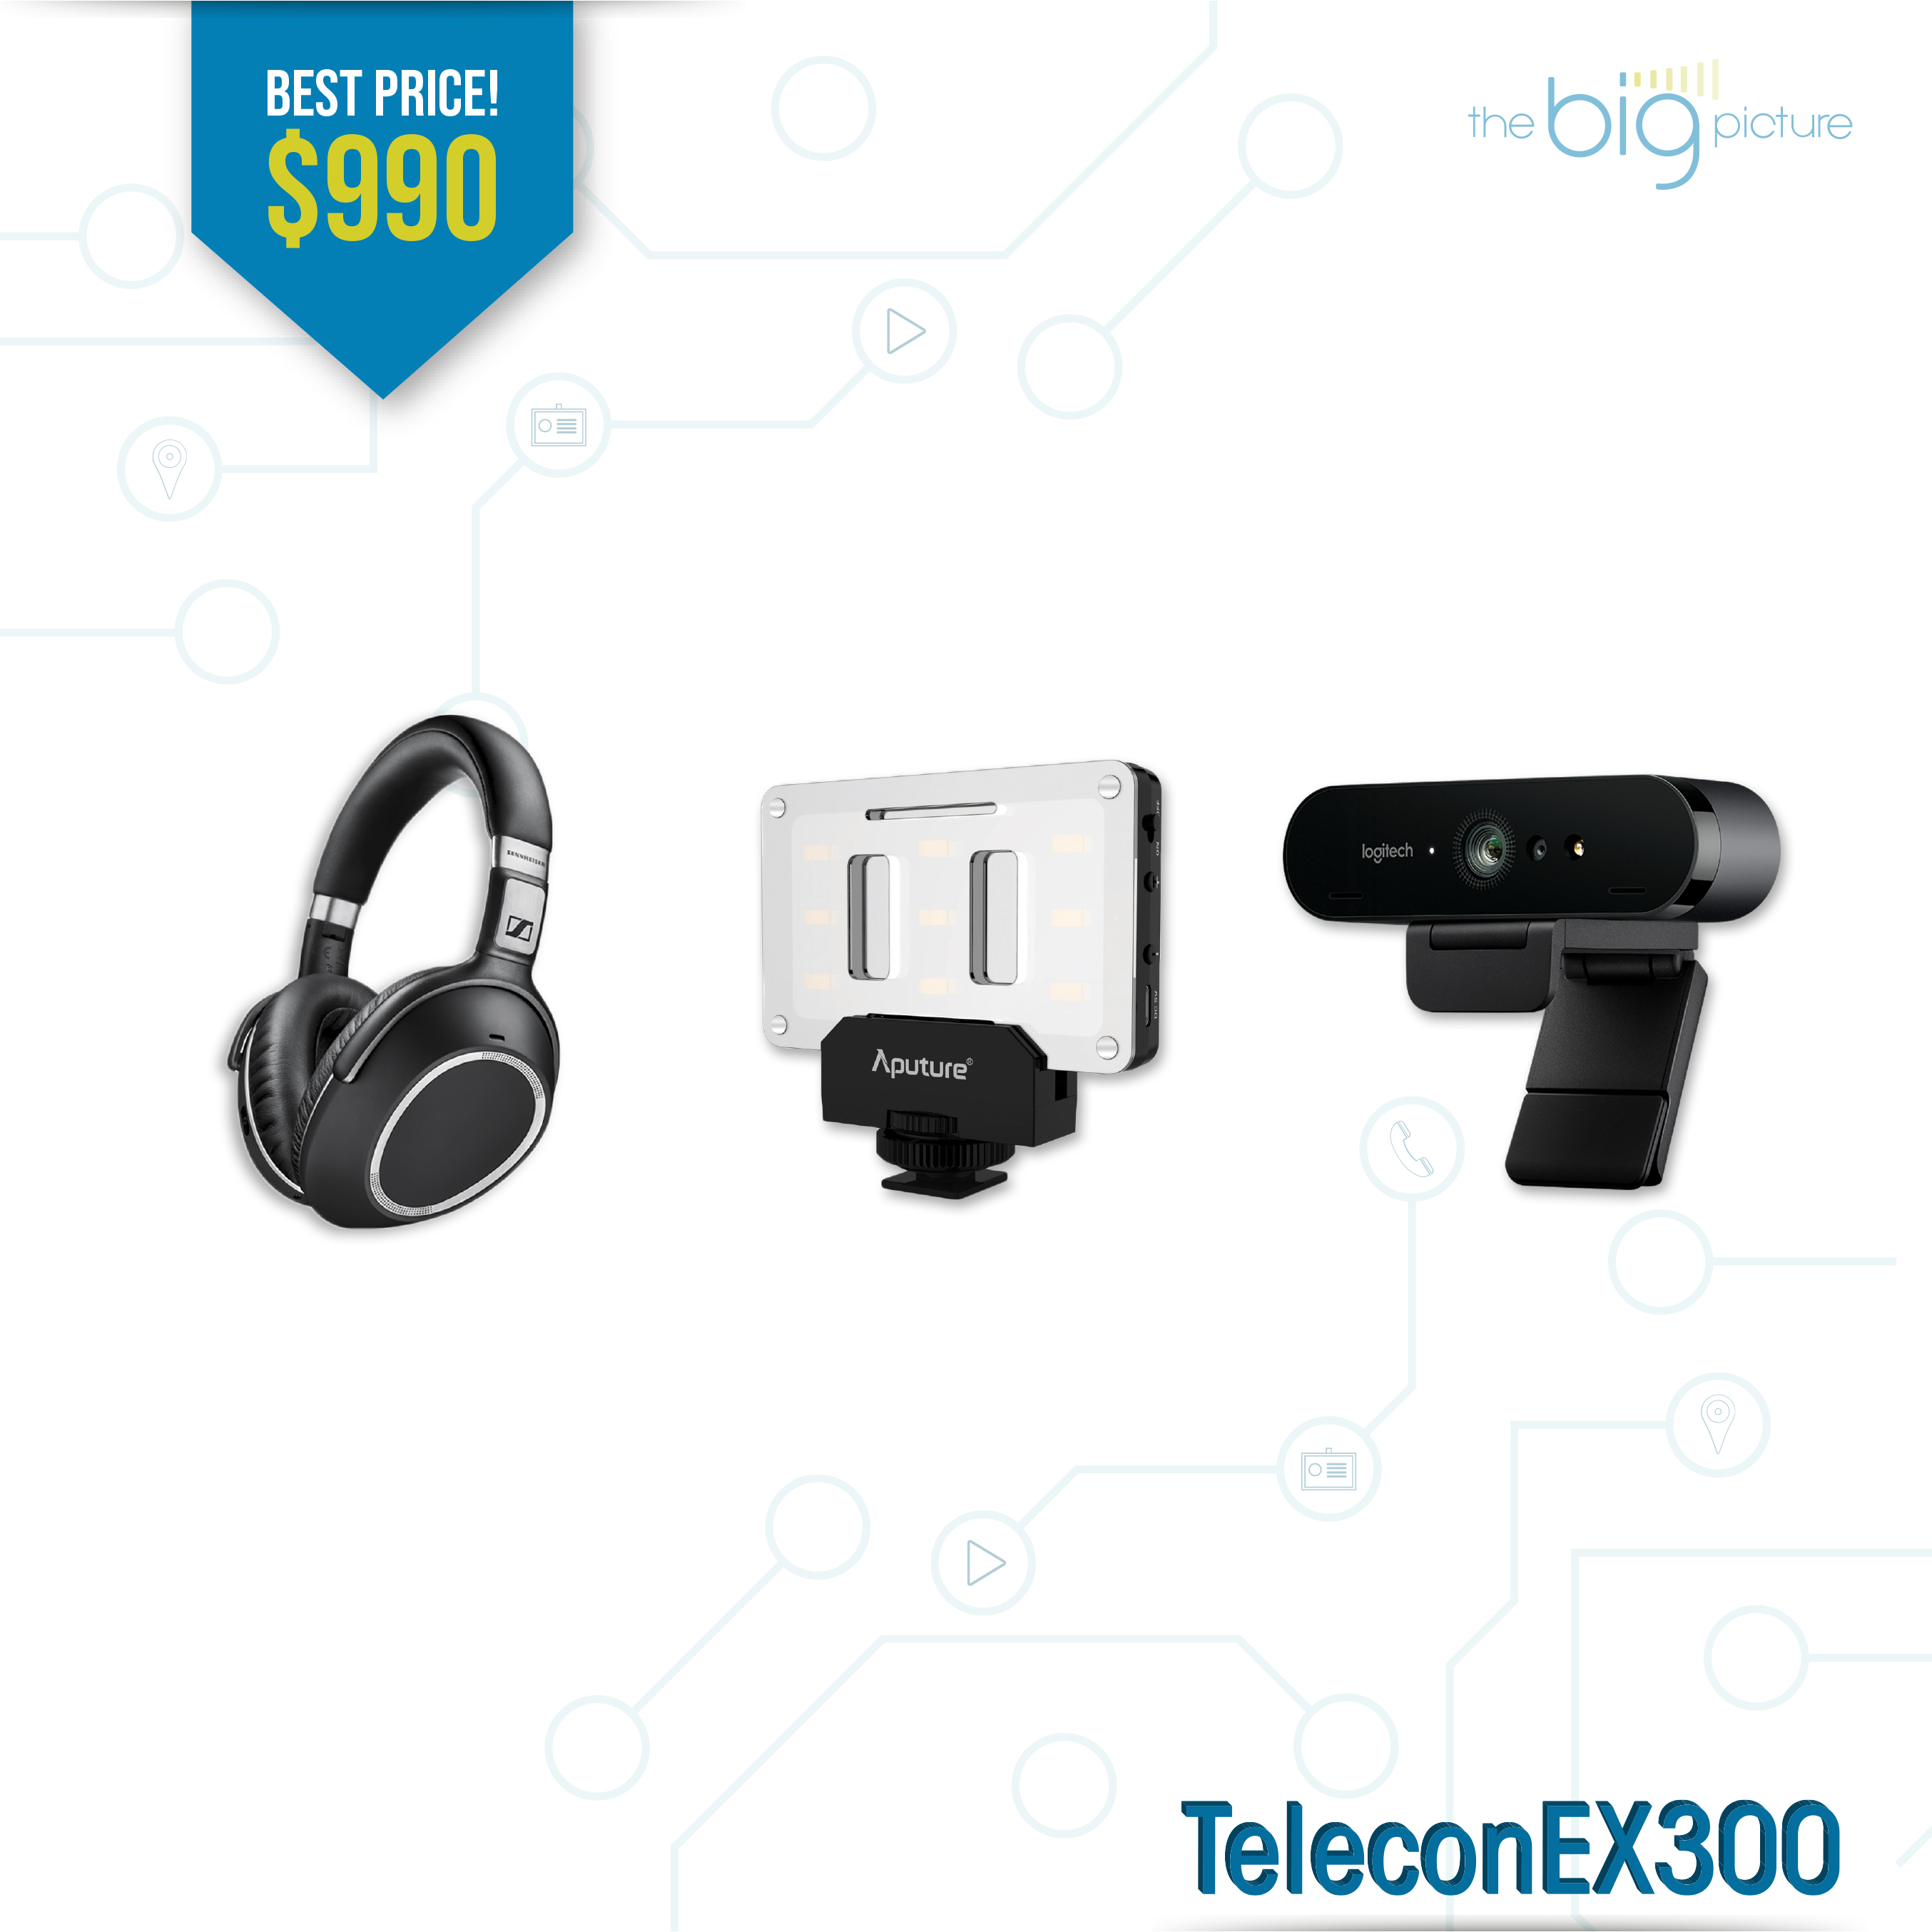 A set of products for TeleconEx300